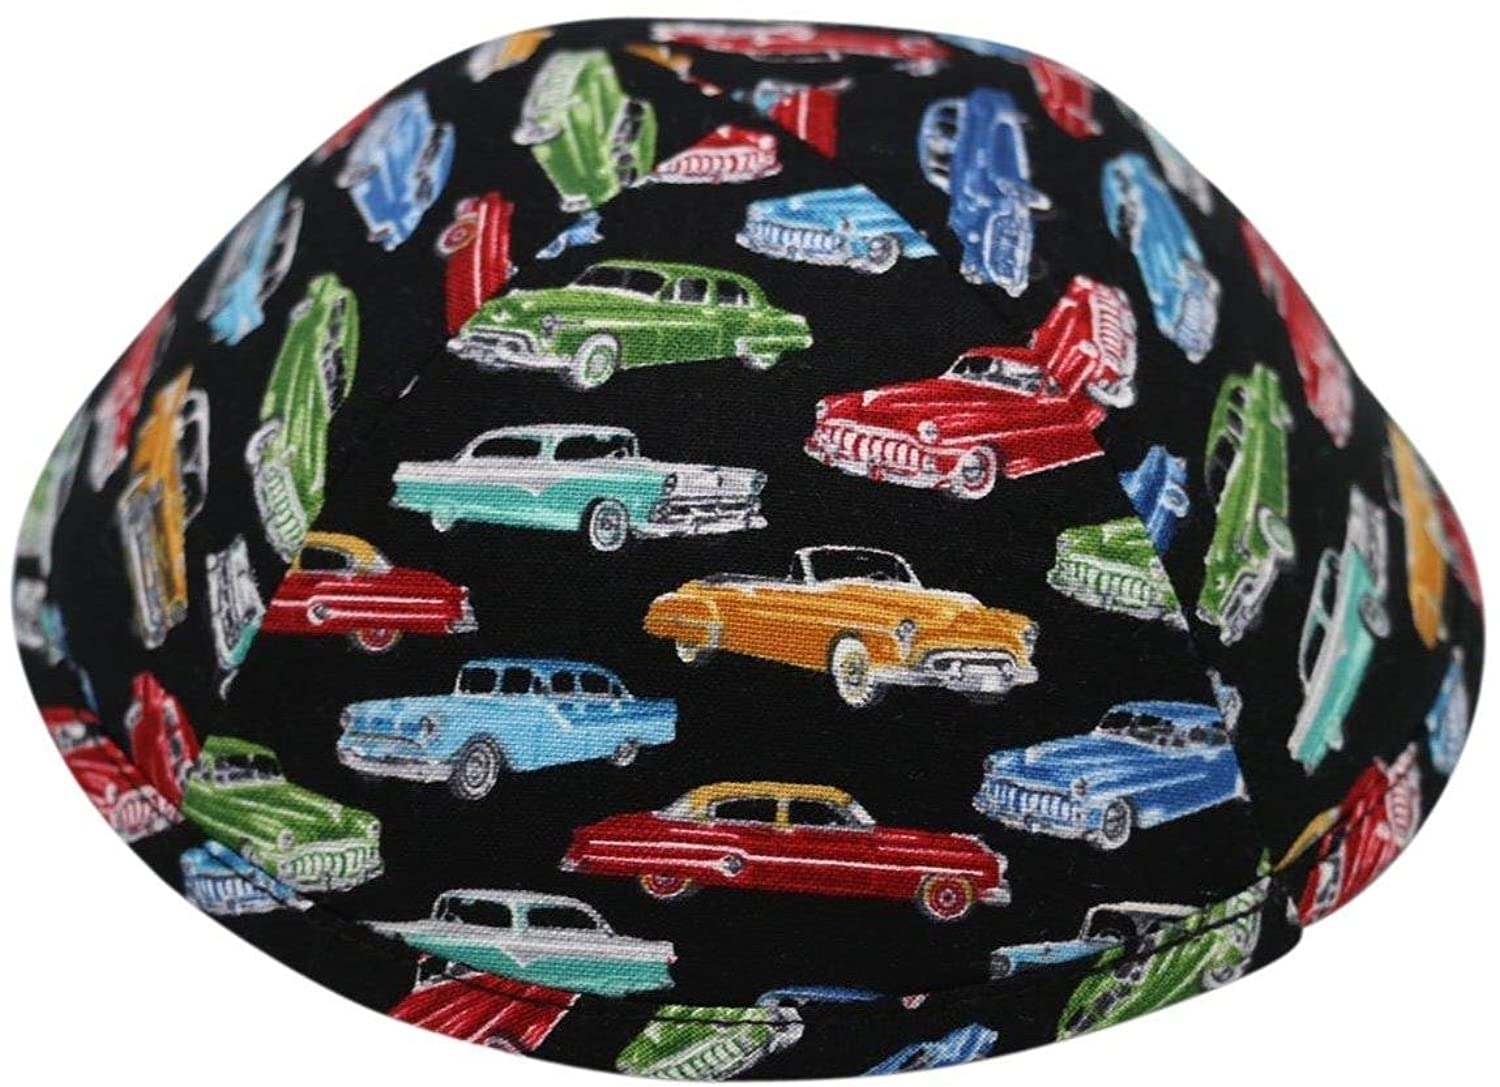 iKippah Boys Vintage Ride Yarmulka for sale